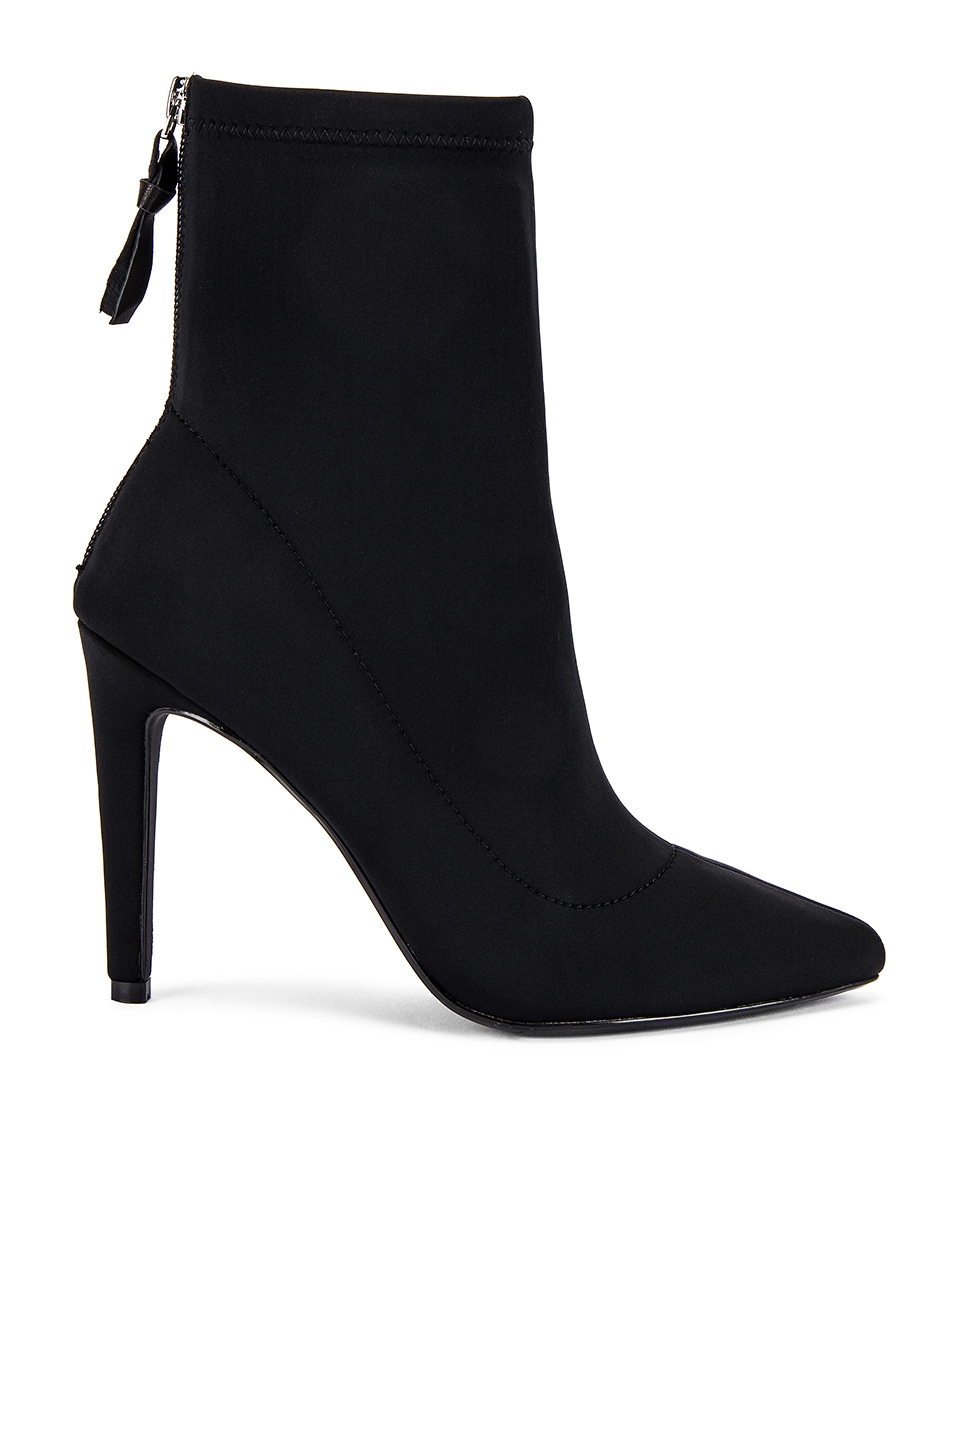 KENDALL + KYLIE Orion Bootie in Black